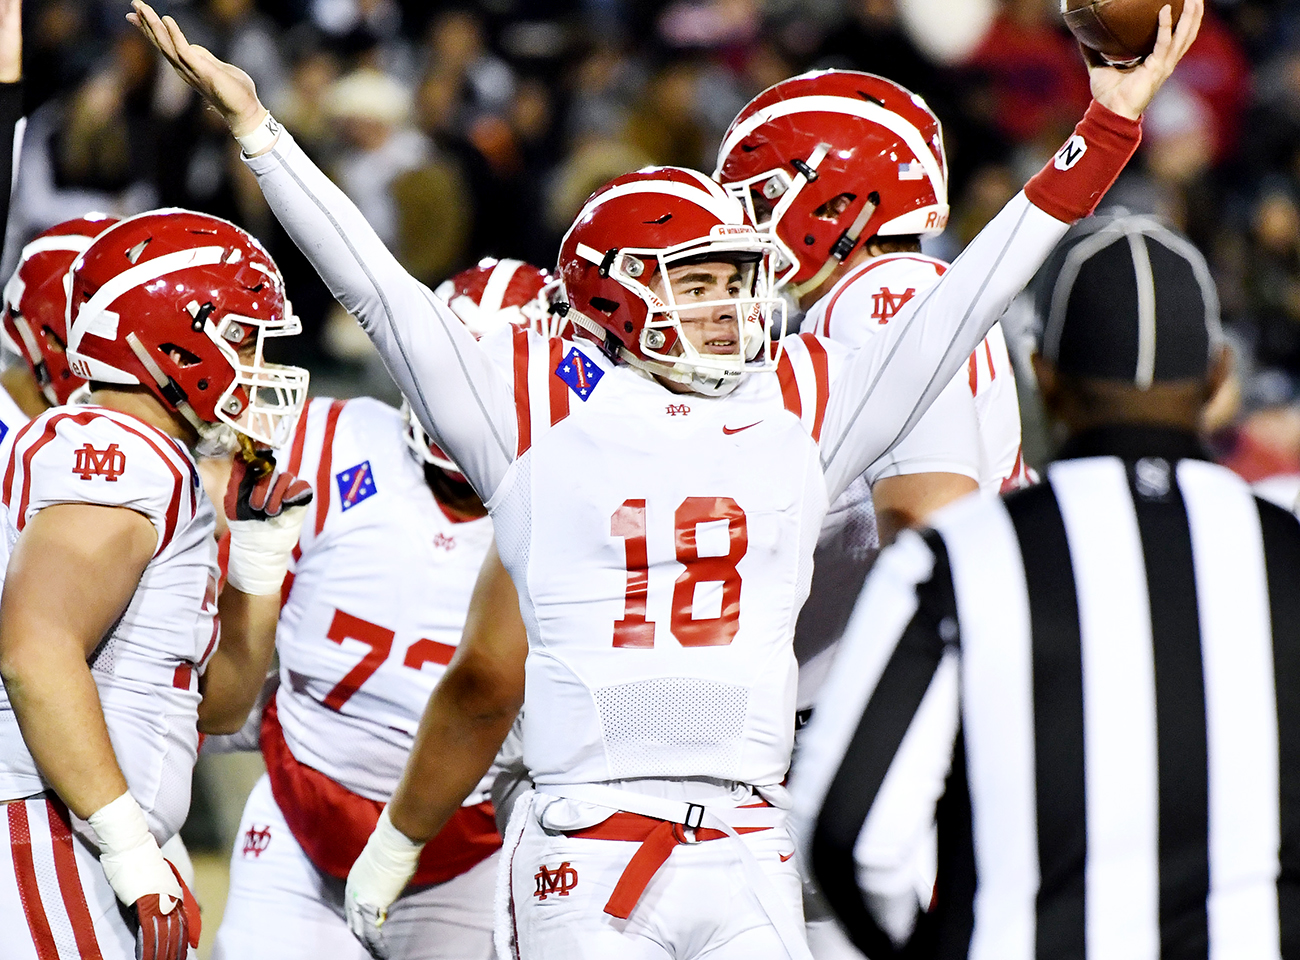 JT Daniels Becomes First to Win Gatorade Male Athlete of the Year Award After Junior Season | Sports Illustrated